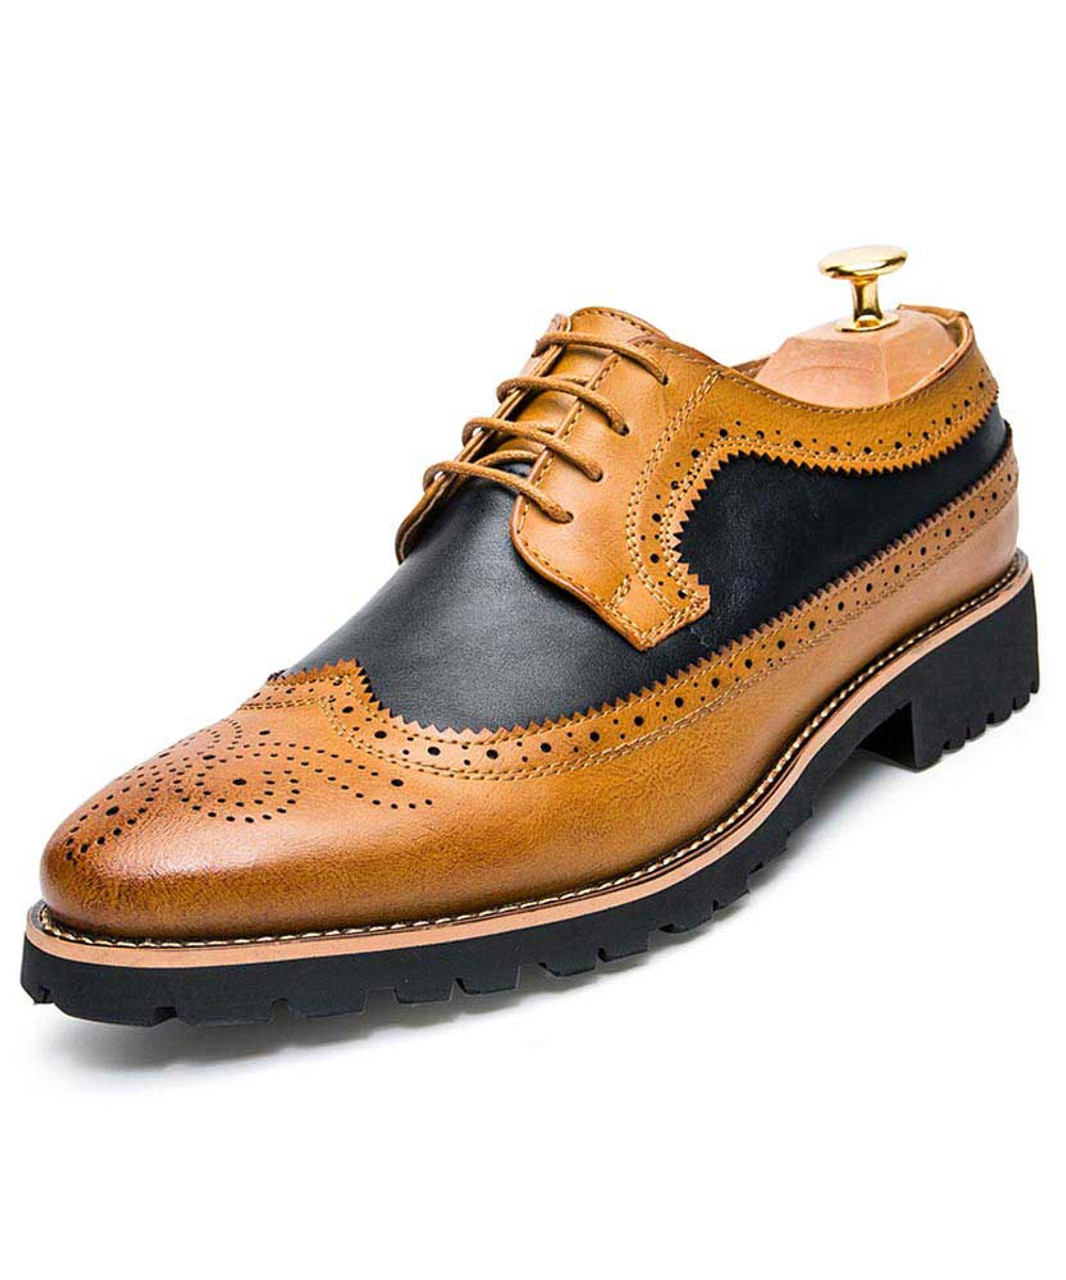 Brown two tone brogue leather derby